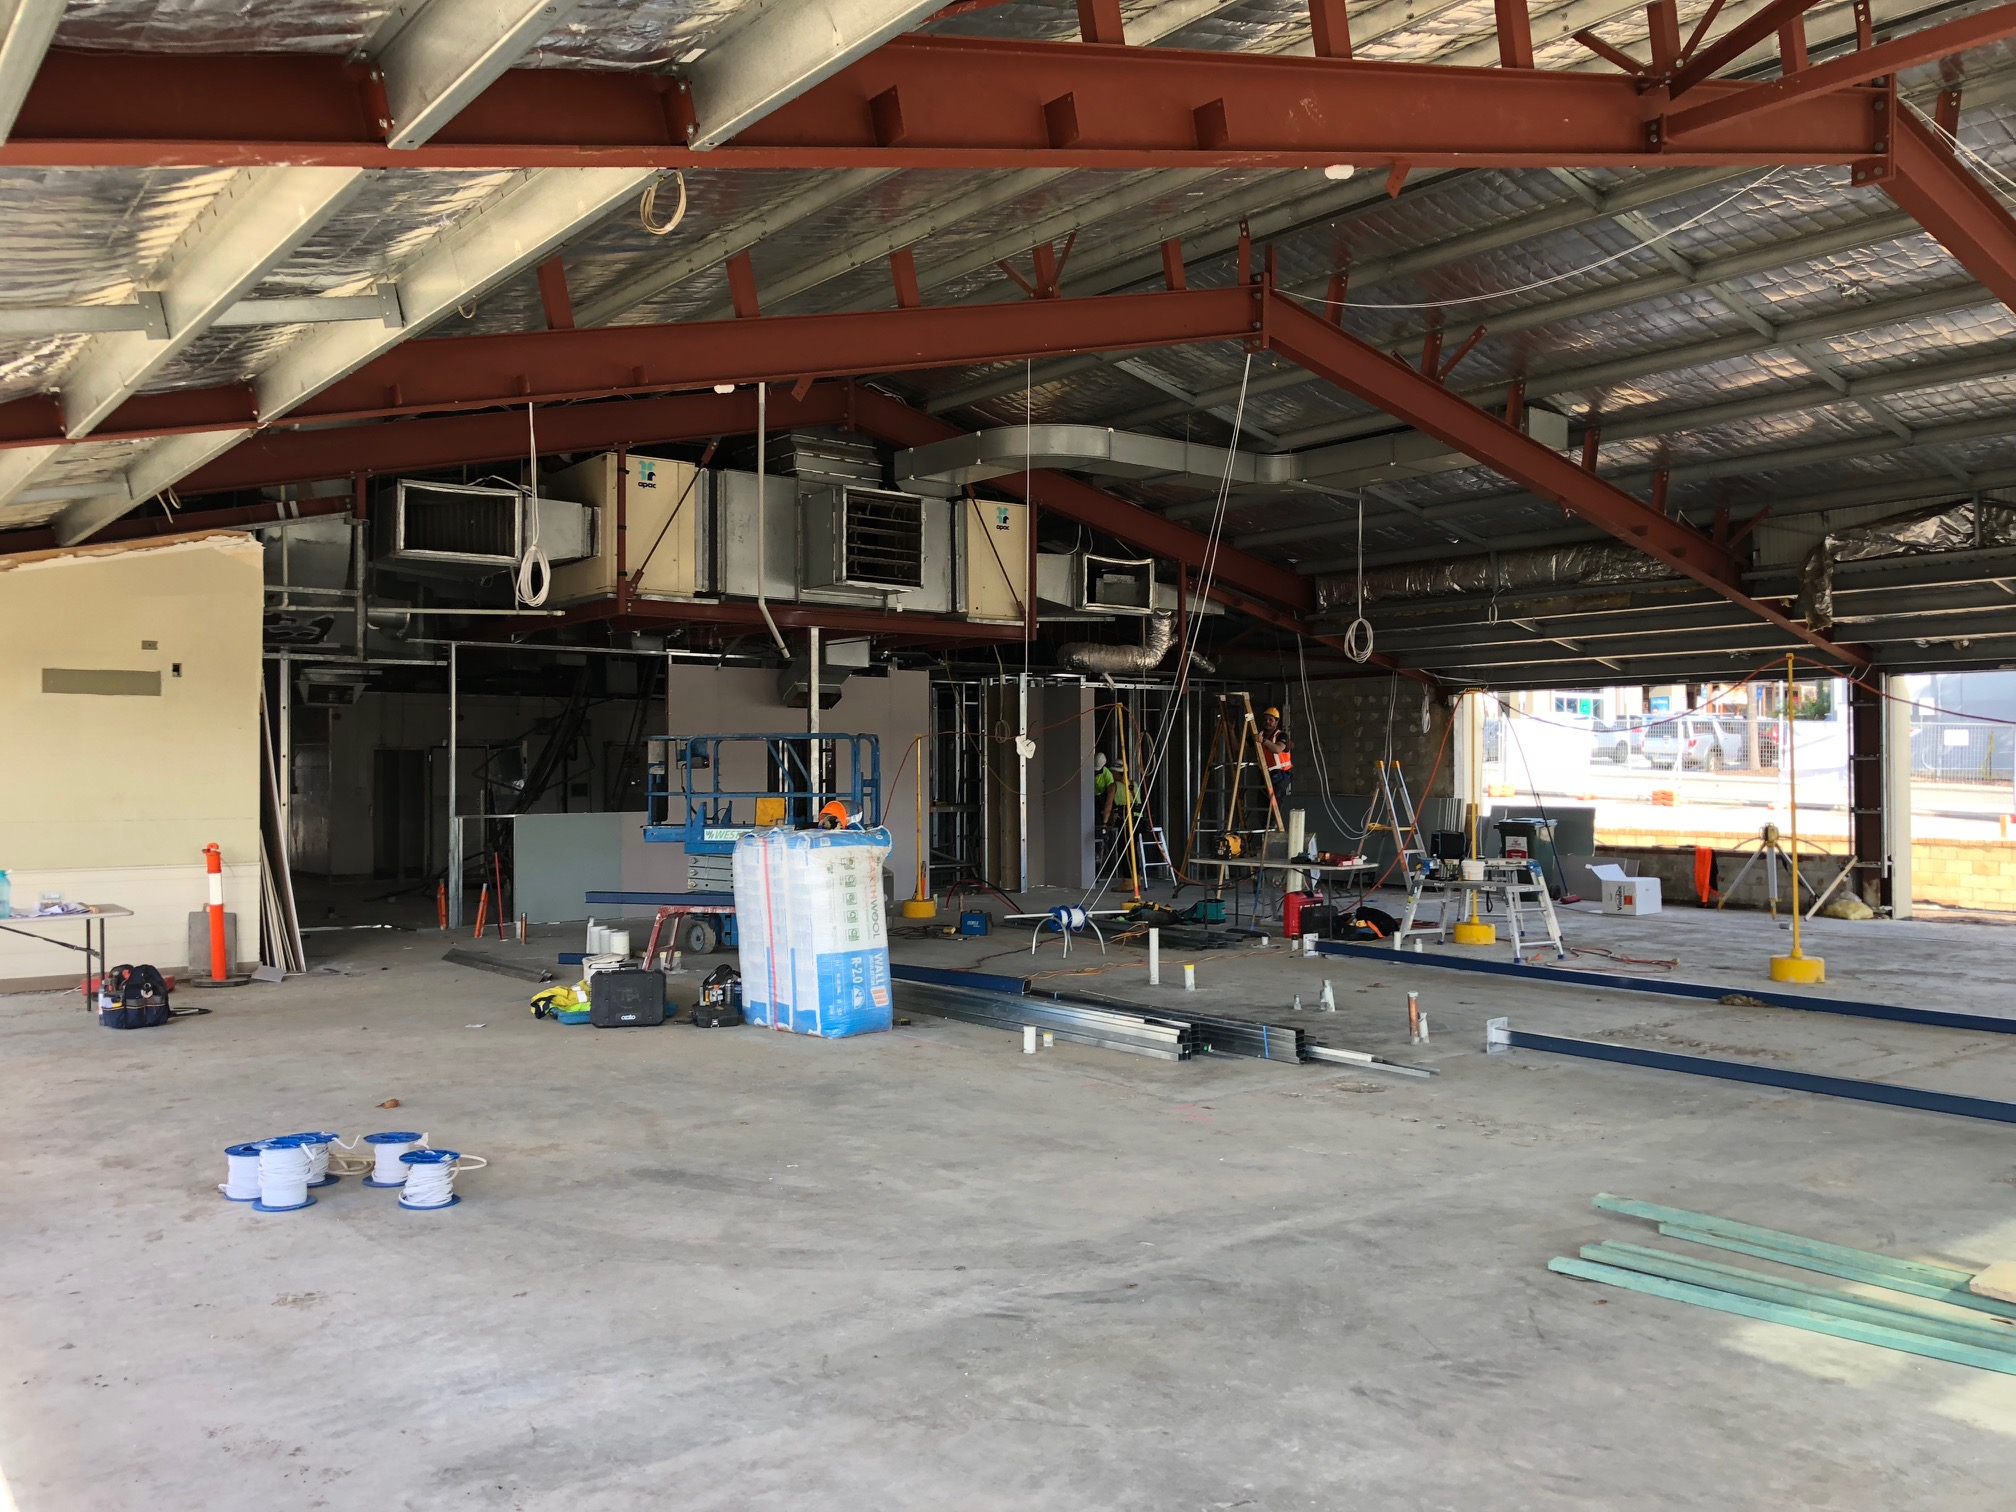 Riverton Bar and Grill - Early days but now is the time to get power, data and AV supports in place so there is no ducking for cover later